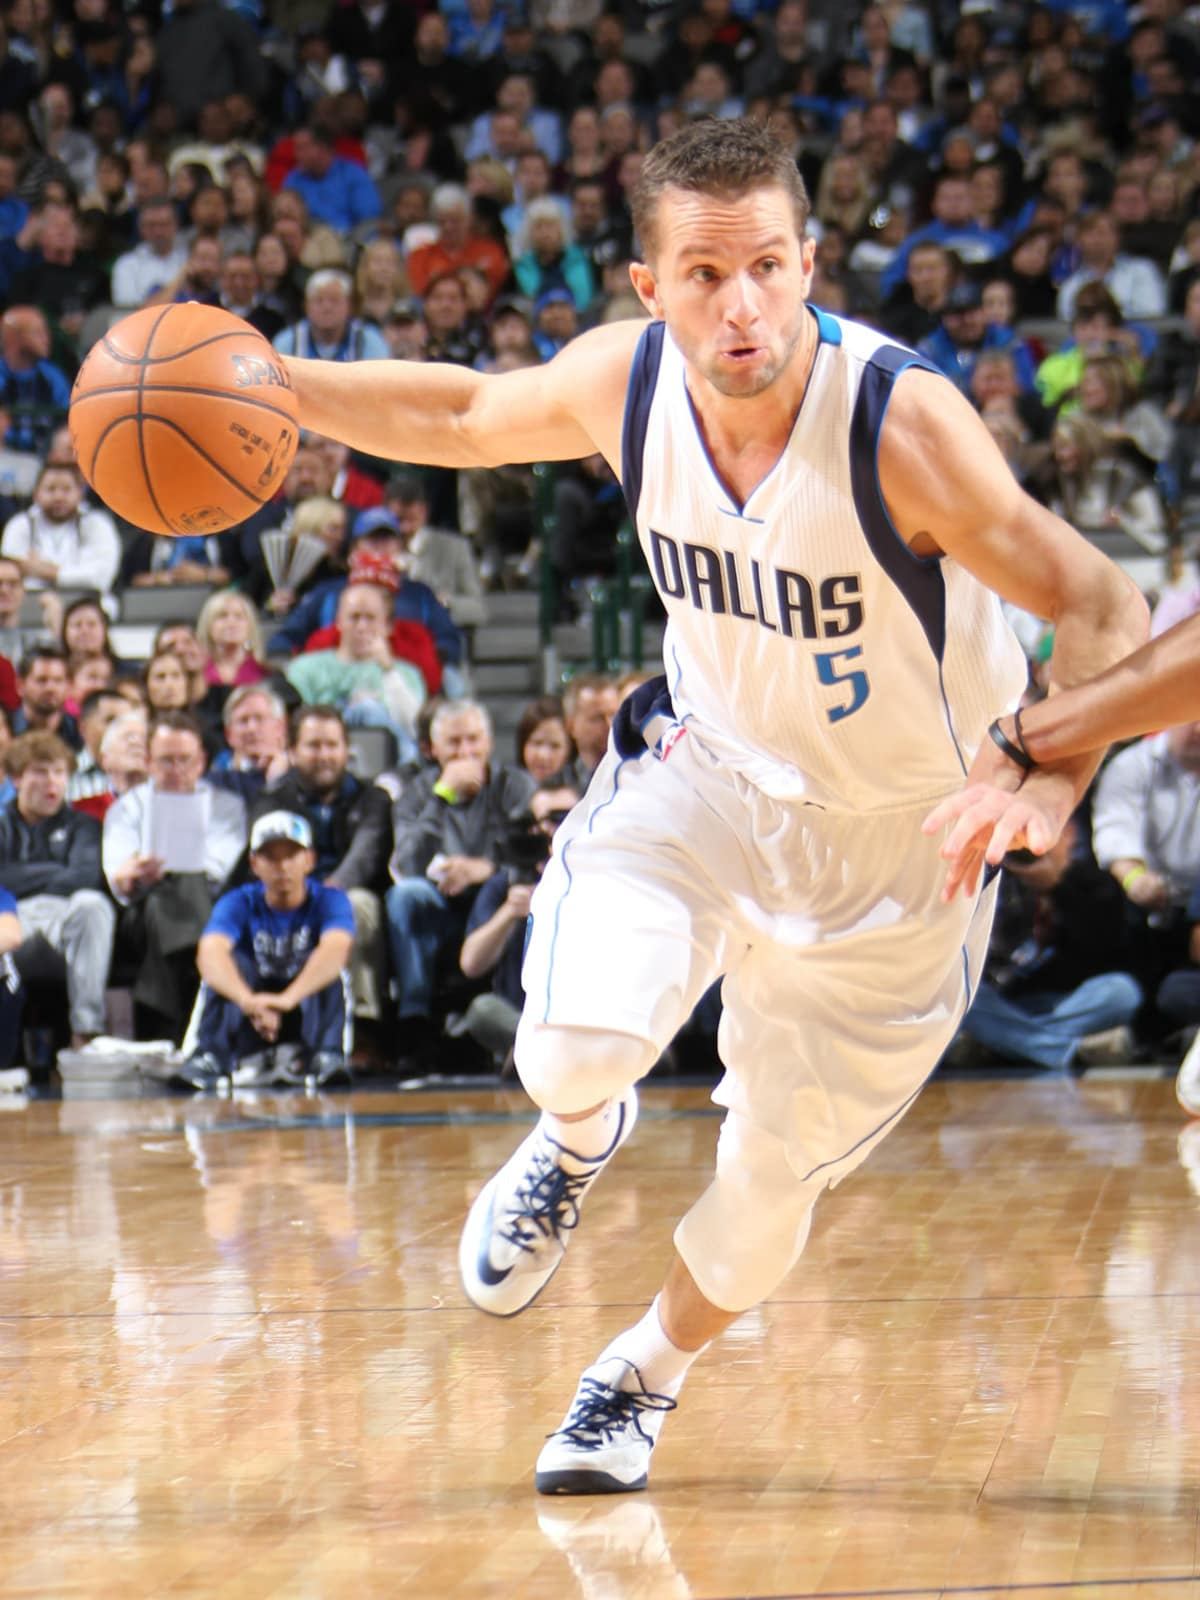 JJ Barea of the Dallas Mavericks